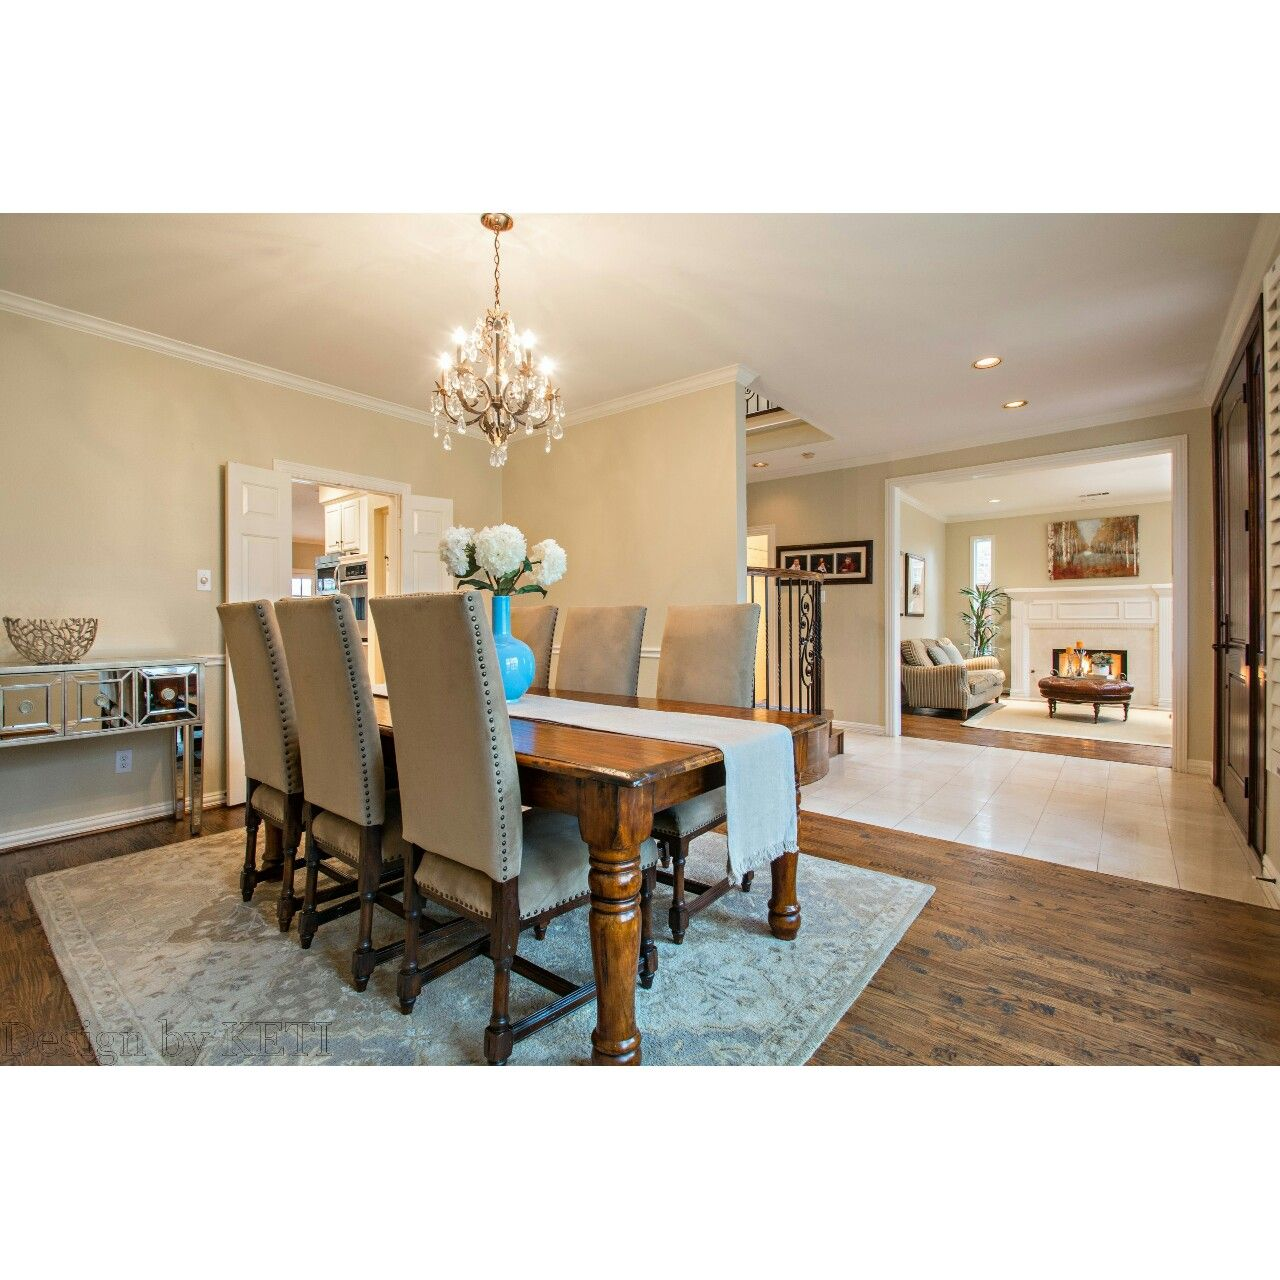 Home Staging Dining Room Table: Home Decor, Dining, Dining Table